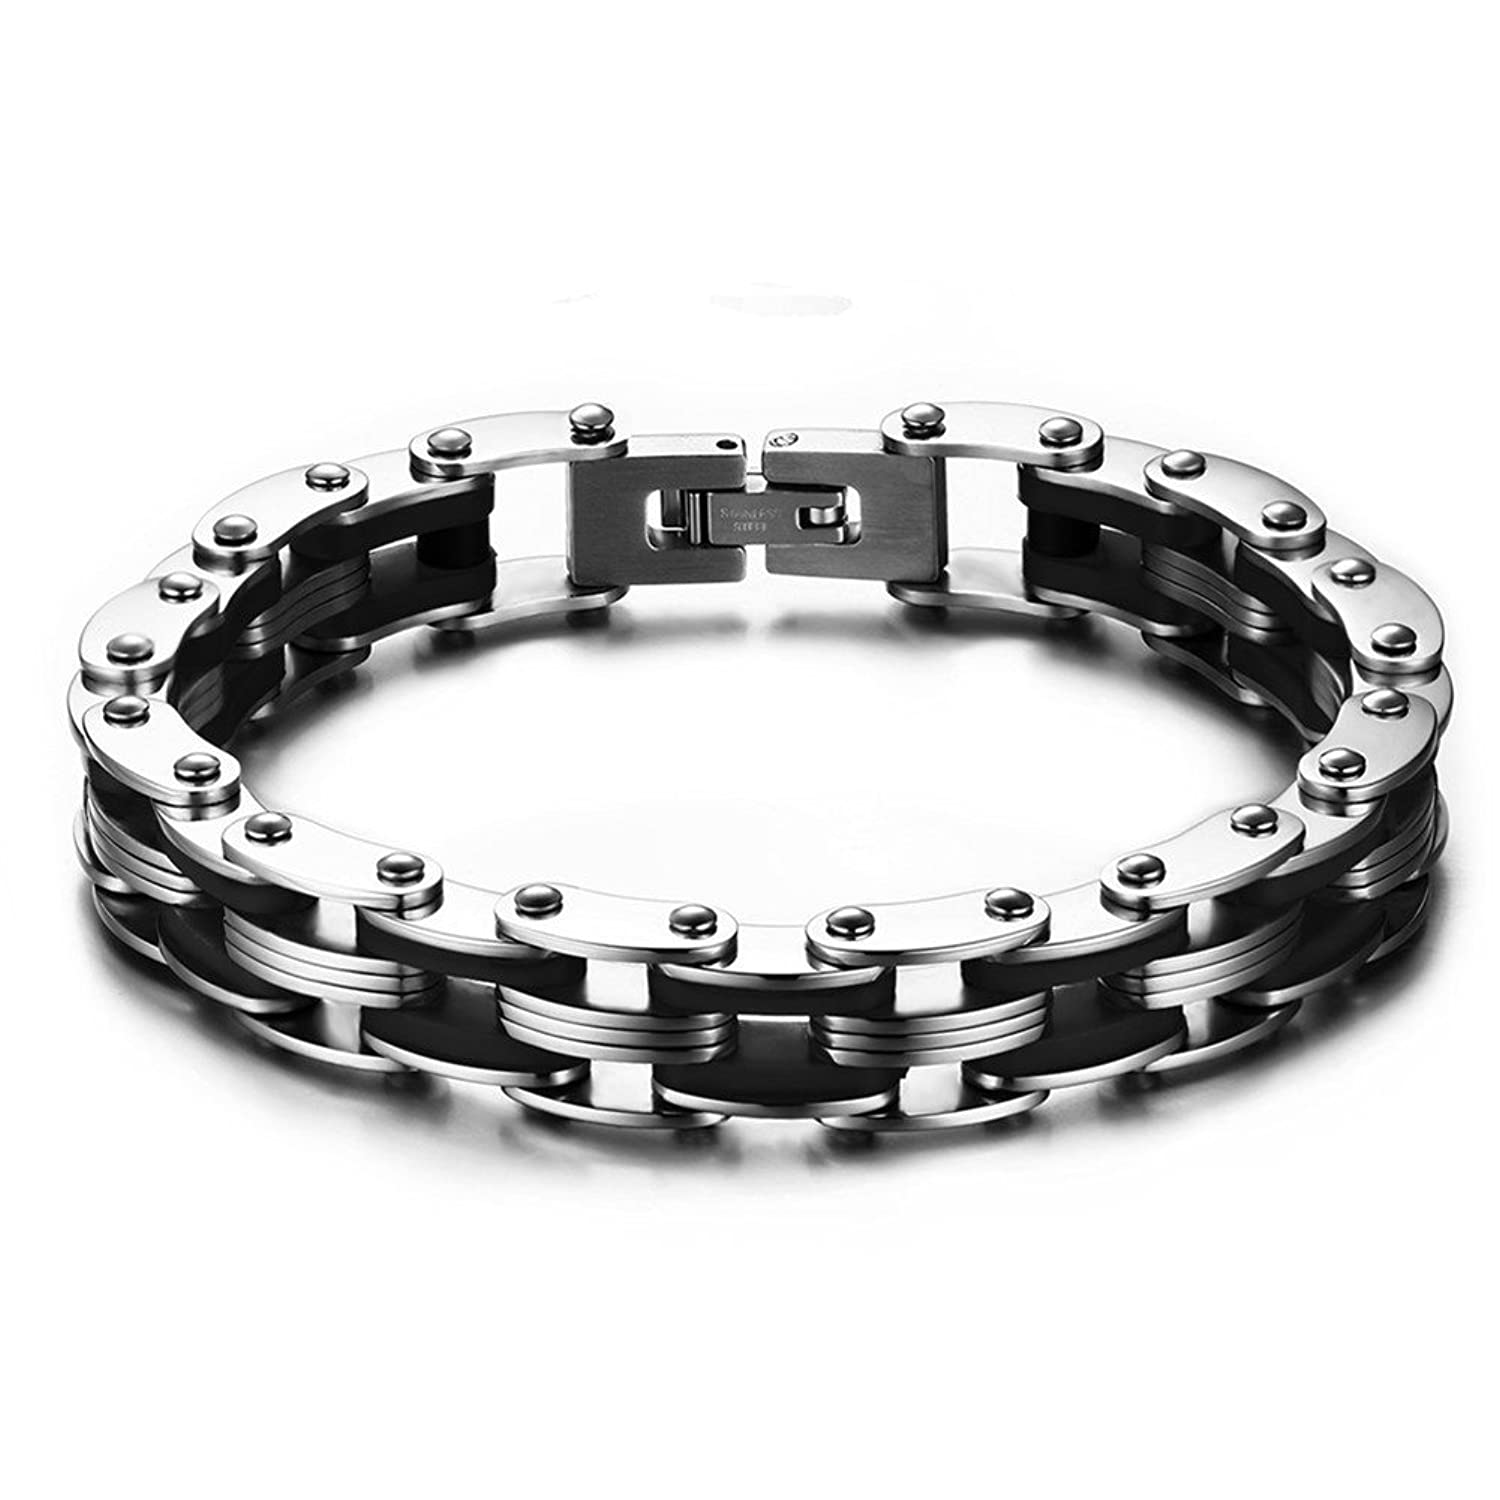 Stainless Steel Black Silicone Men's Bicycle Bike Chain Bracelet for Men,Bold and Chunky